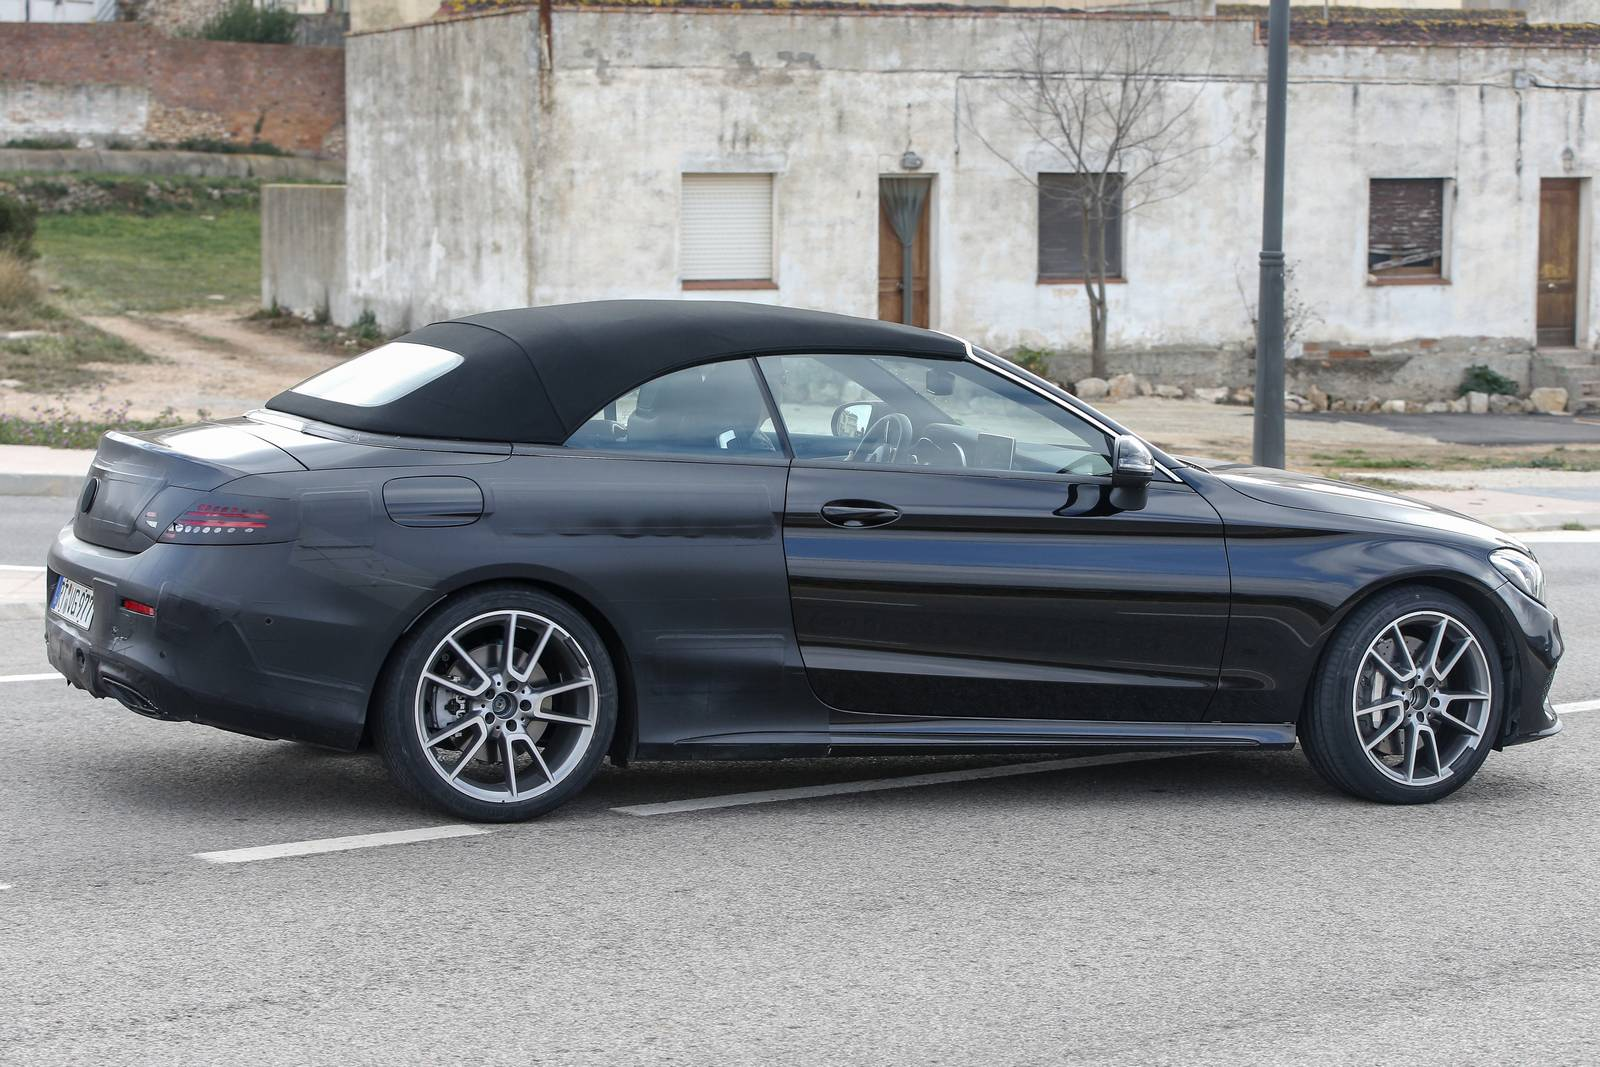 Mercedes amg c43 and c63 cabriolet spy shots emerge gtspirit for 2017 mercedes benz amg c43 convertible